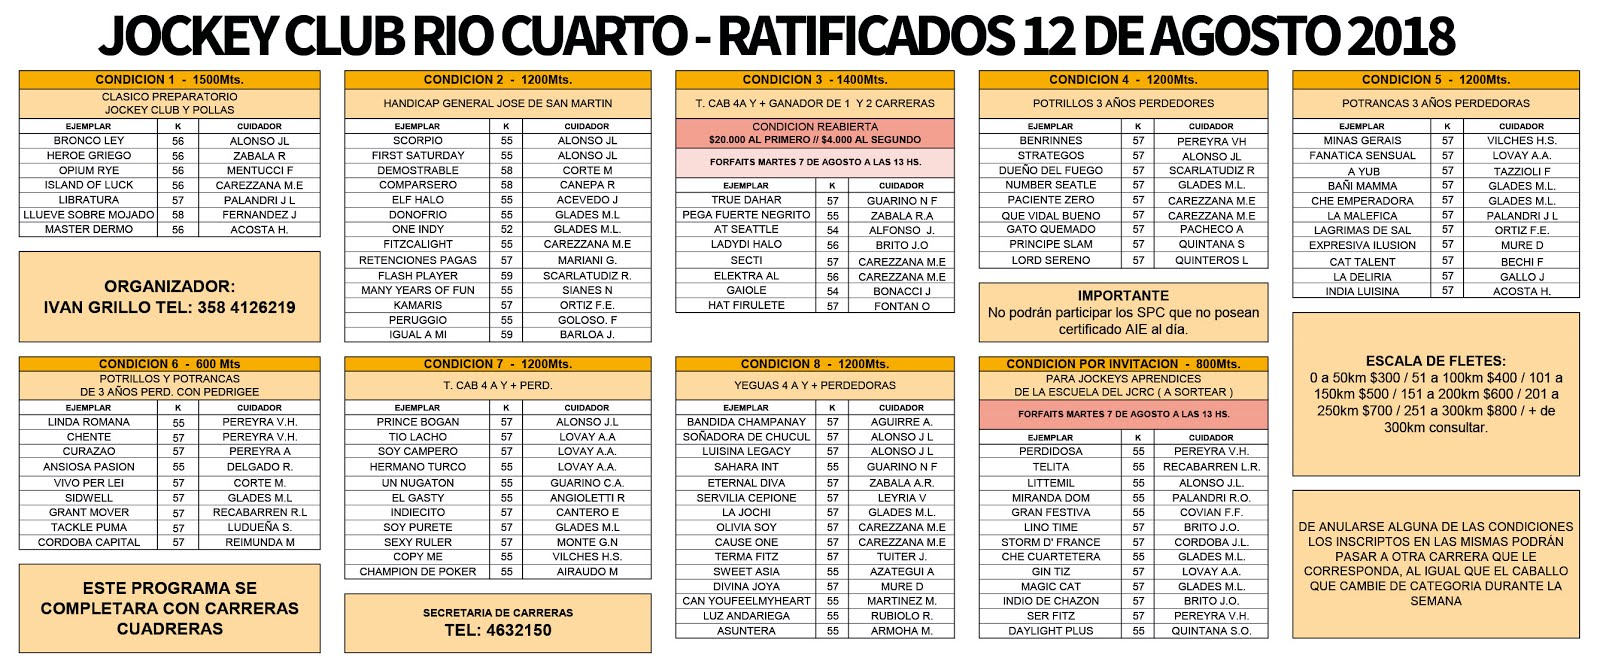 Ratificados 12 de Agosto - Jockey Club Río Cuarto